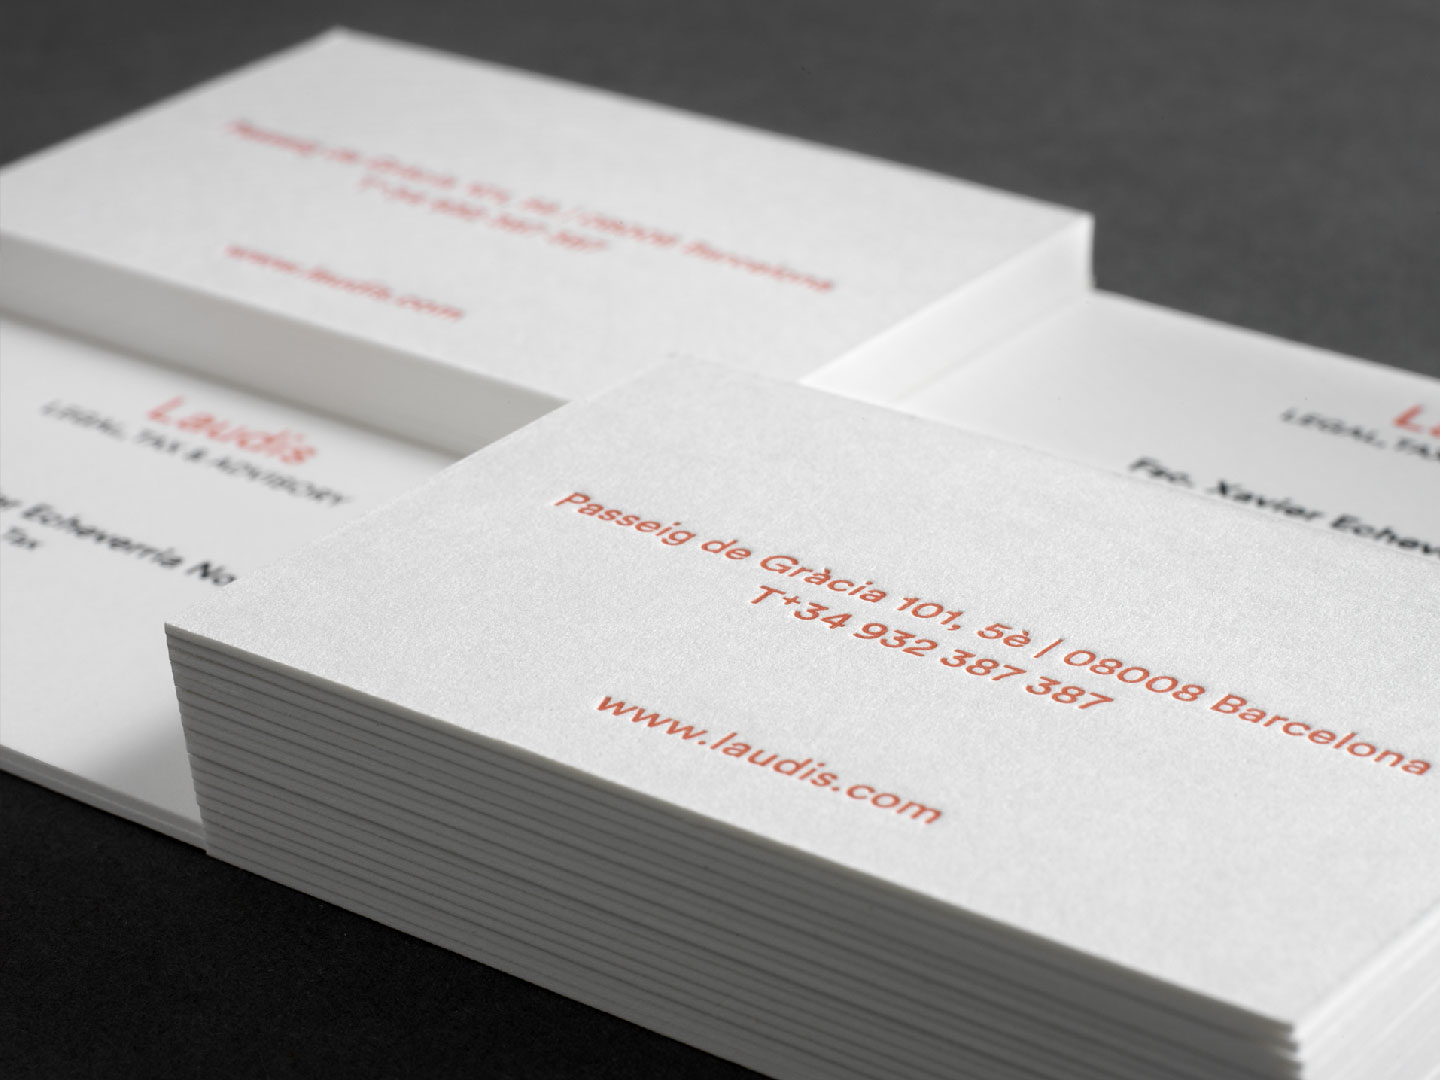 Laudis business card detail